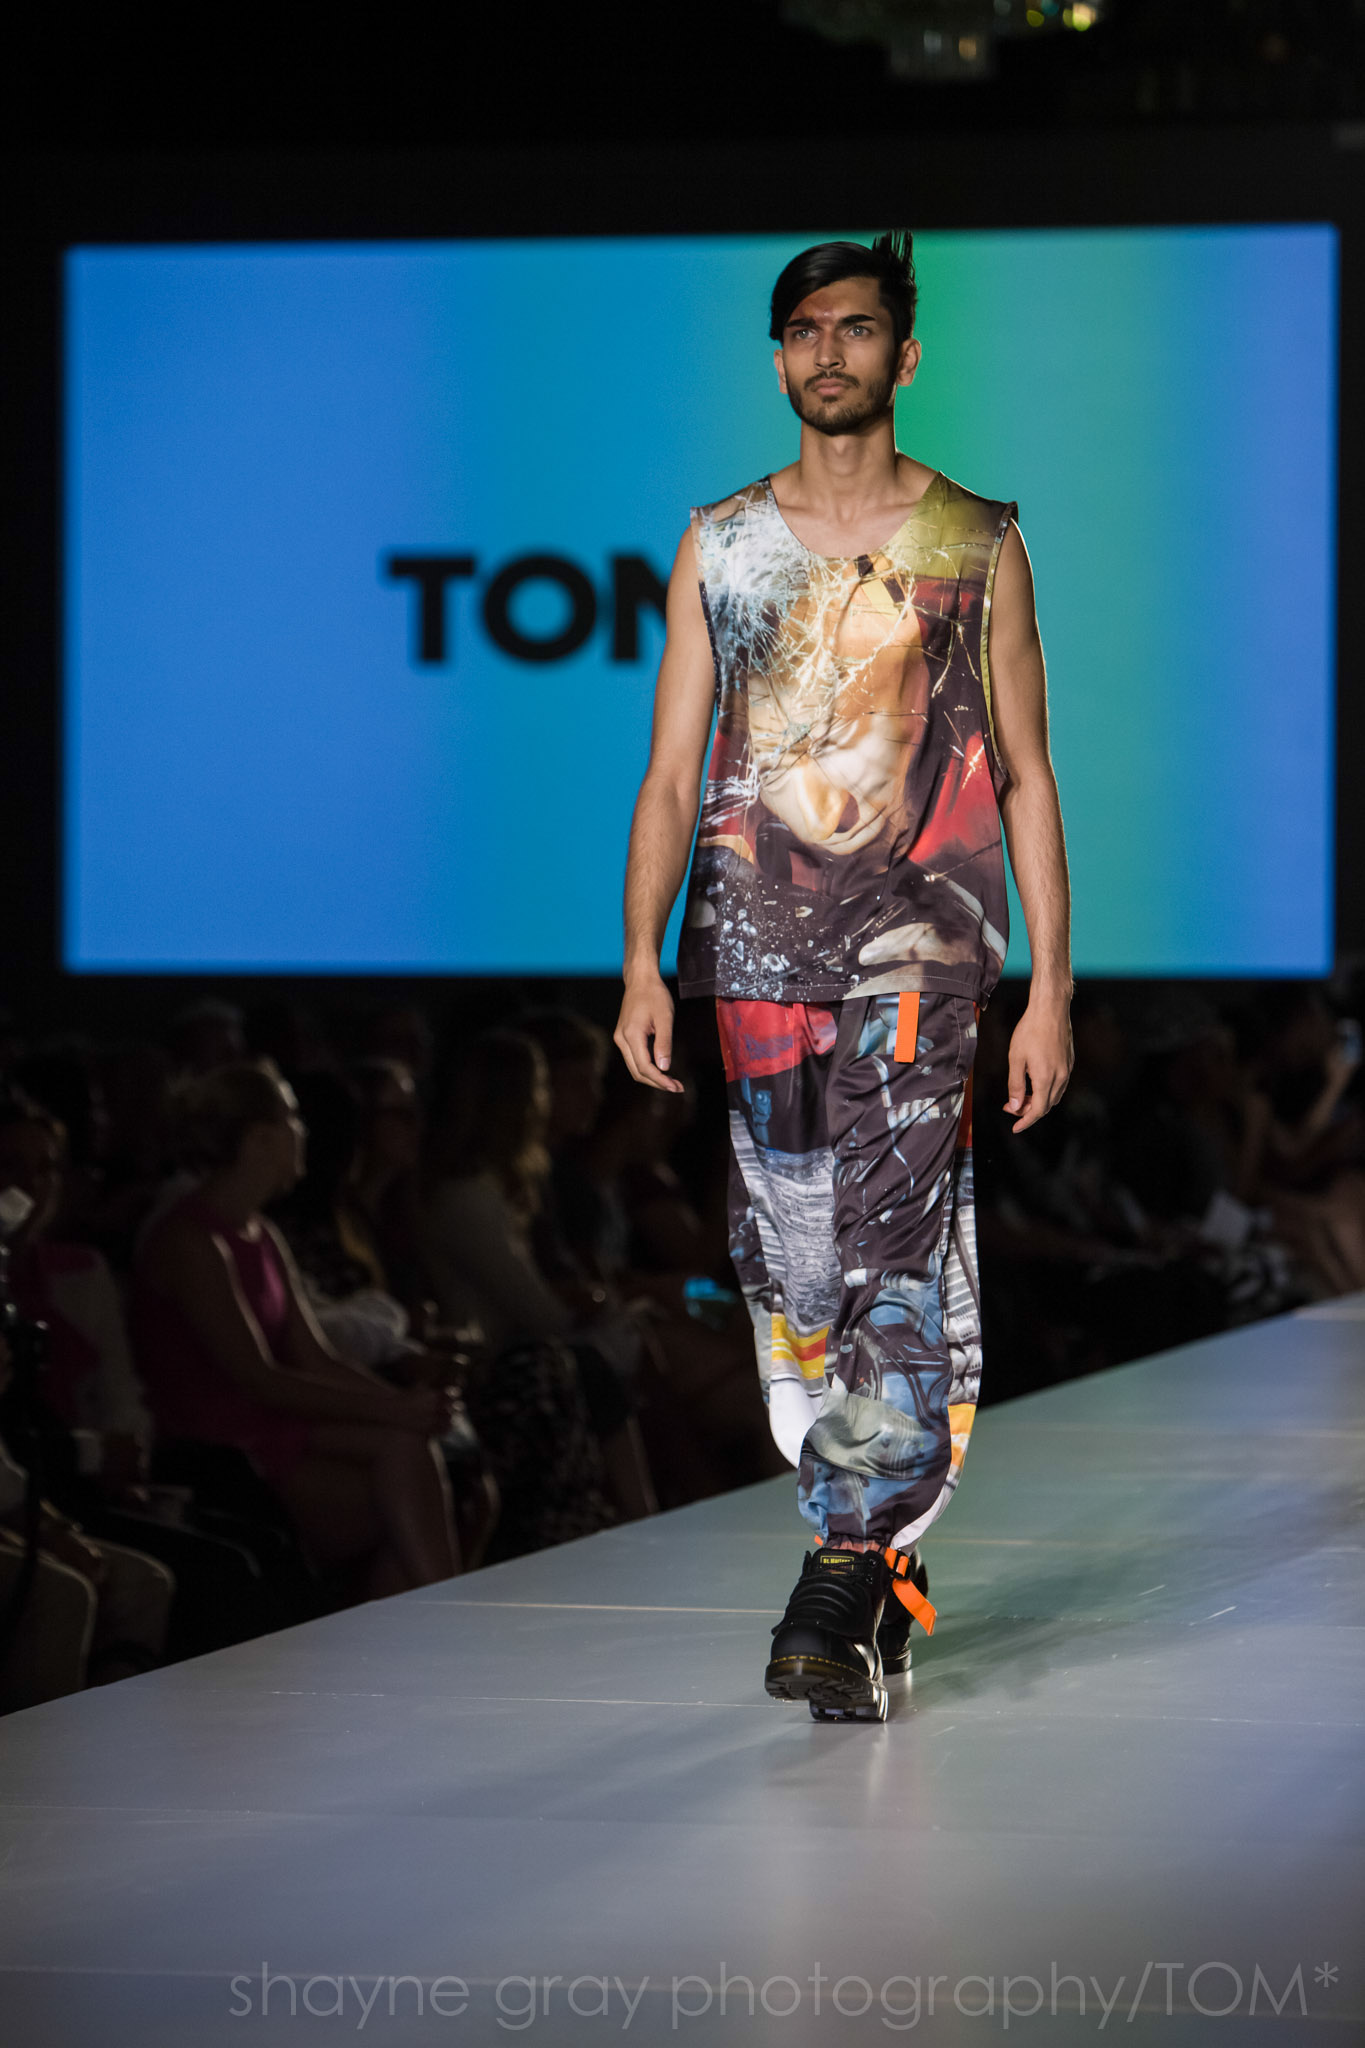 Shayne-Gray-Toronto-men's-fashion_week-TOM-lafaille-7602.jpg